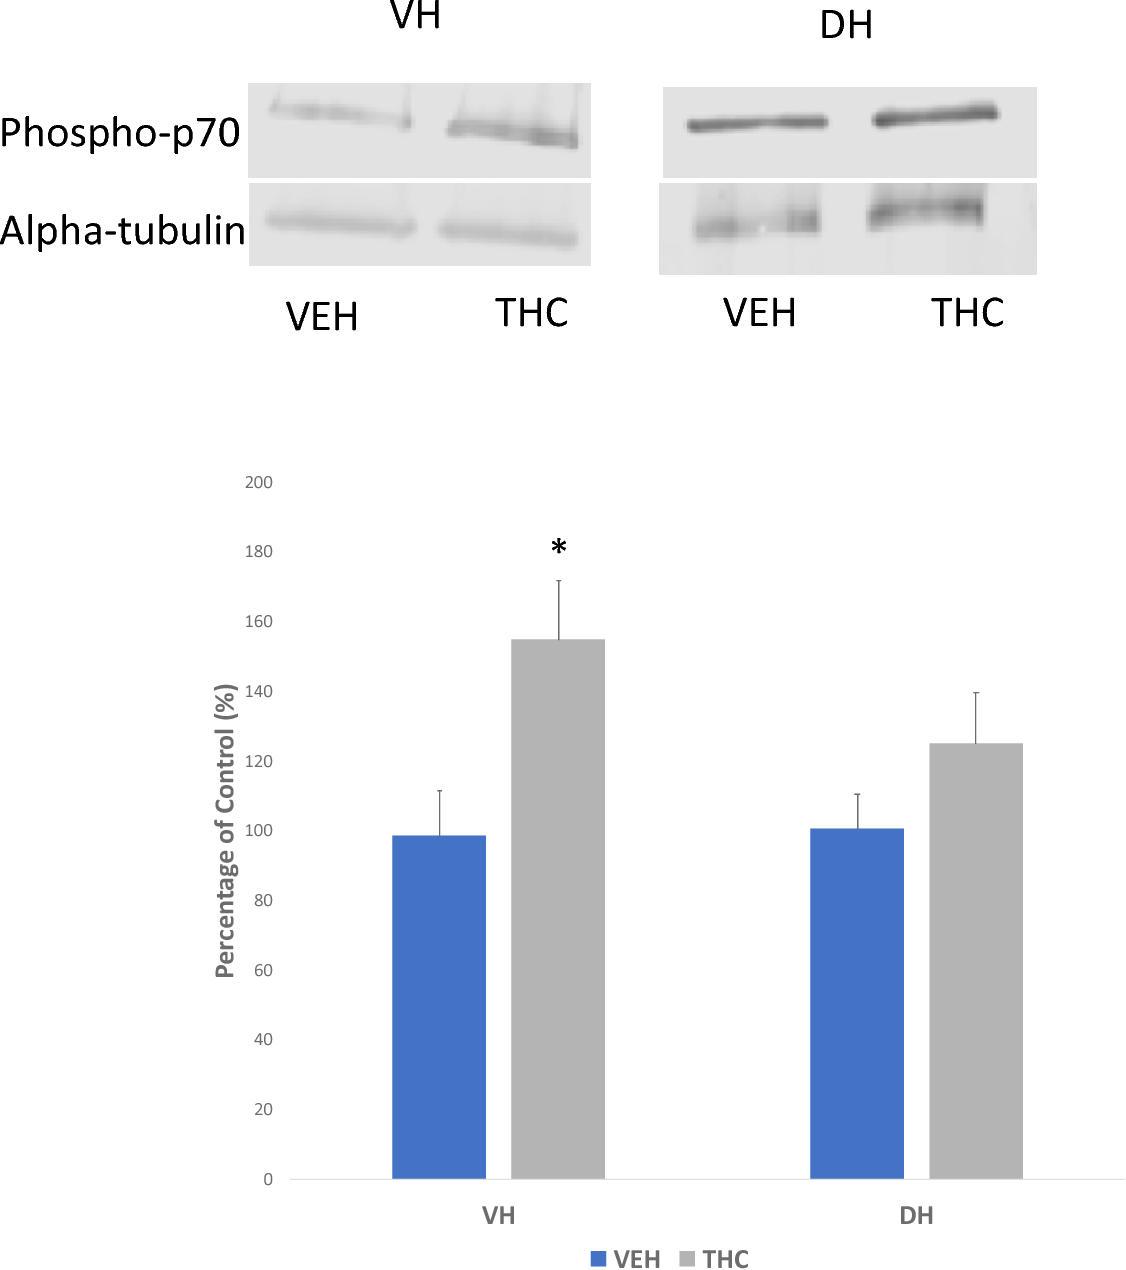 Figure 22 THC on phosphorylated p70S6 kinase levels. Representative western blot for phosphorylated p70S6 (70 kDa) and alpha-tubulin (55 kDa) expression in VH and DH tissue (top). Significant increase in phopho-p70S6 expression in intra-VH THC treated animals only. N=4; t-tests, *Indicated p<0.05, Error bars represent standard error of means (SEMs).